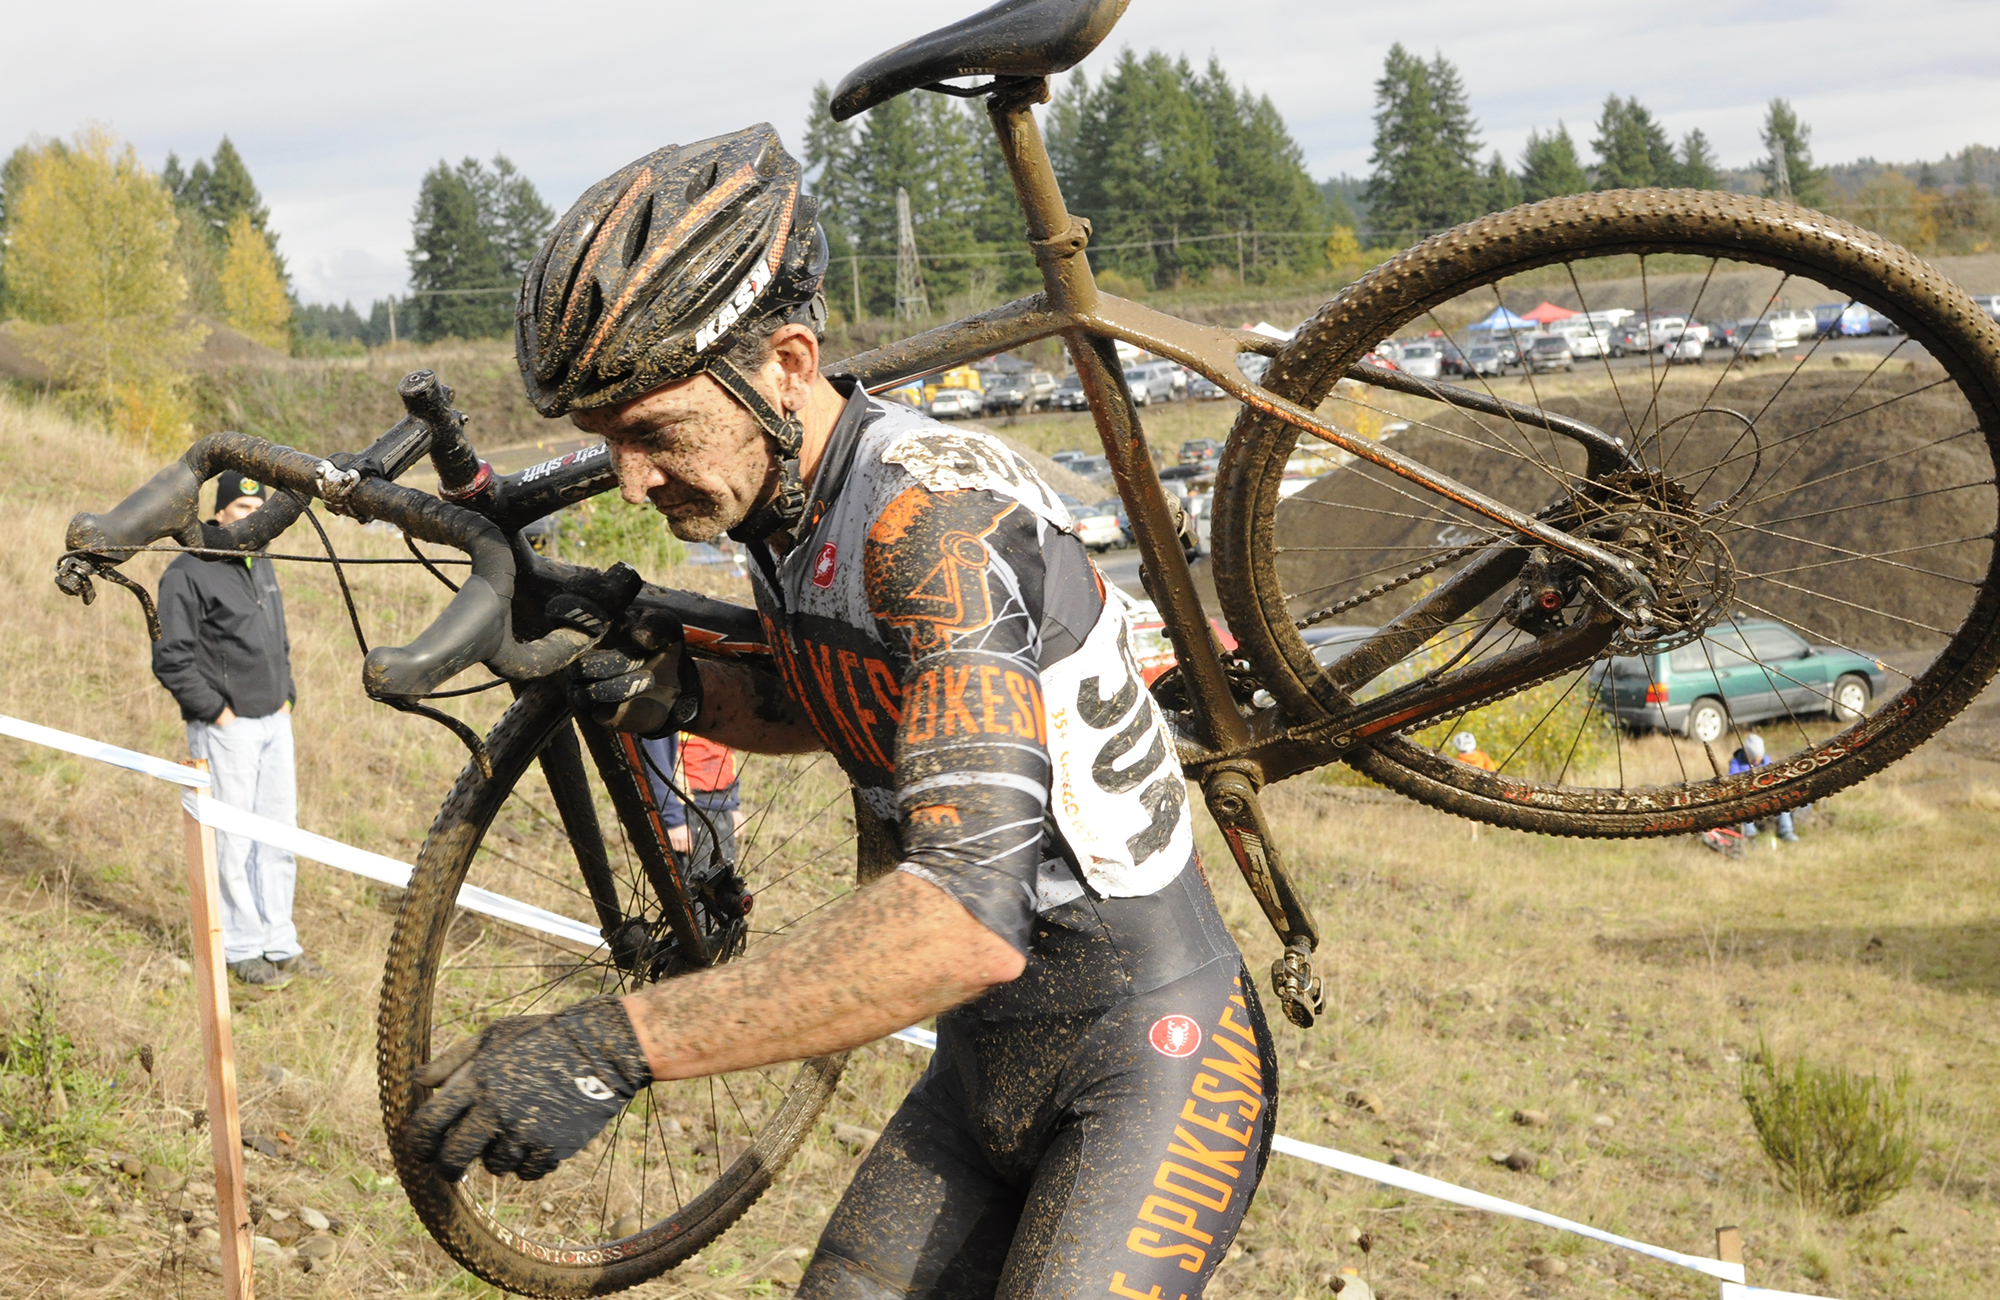 SellwoodCycle_CCBP_35